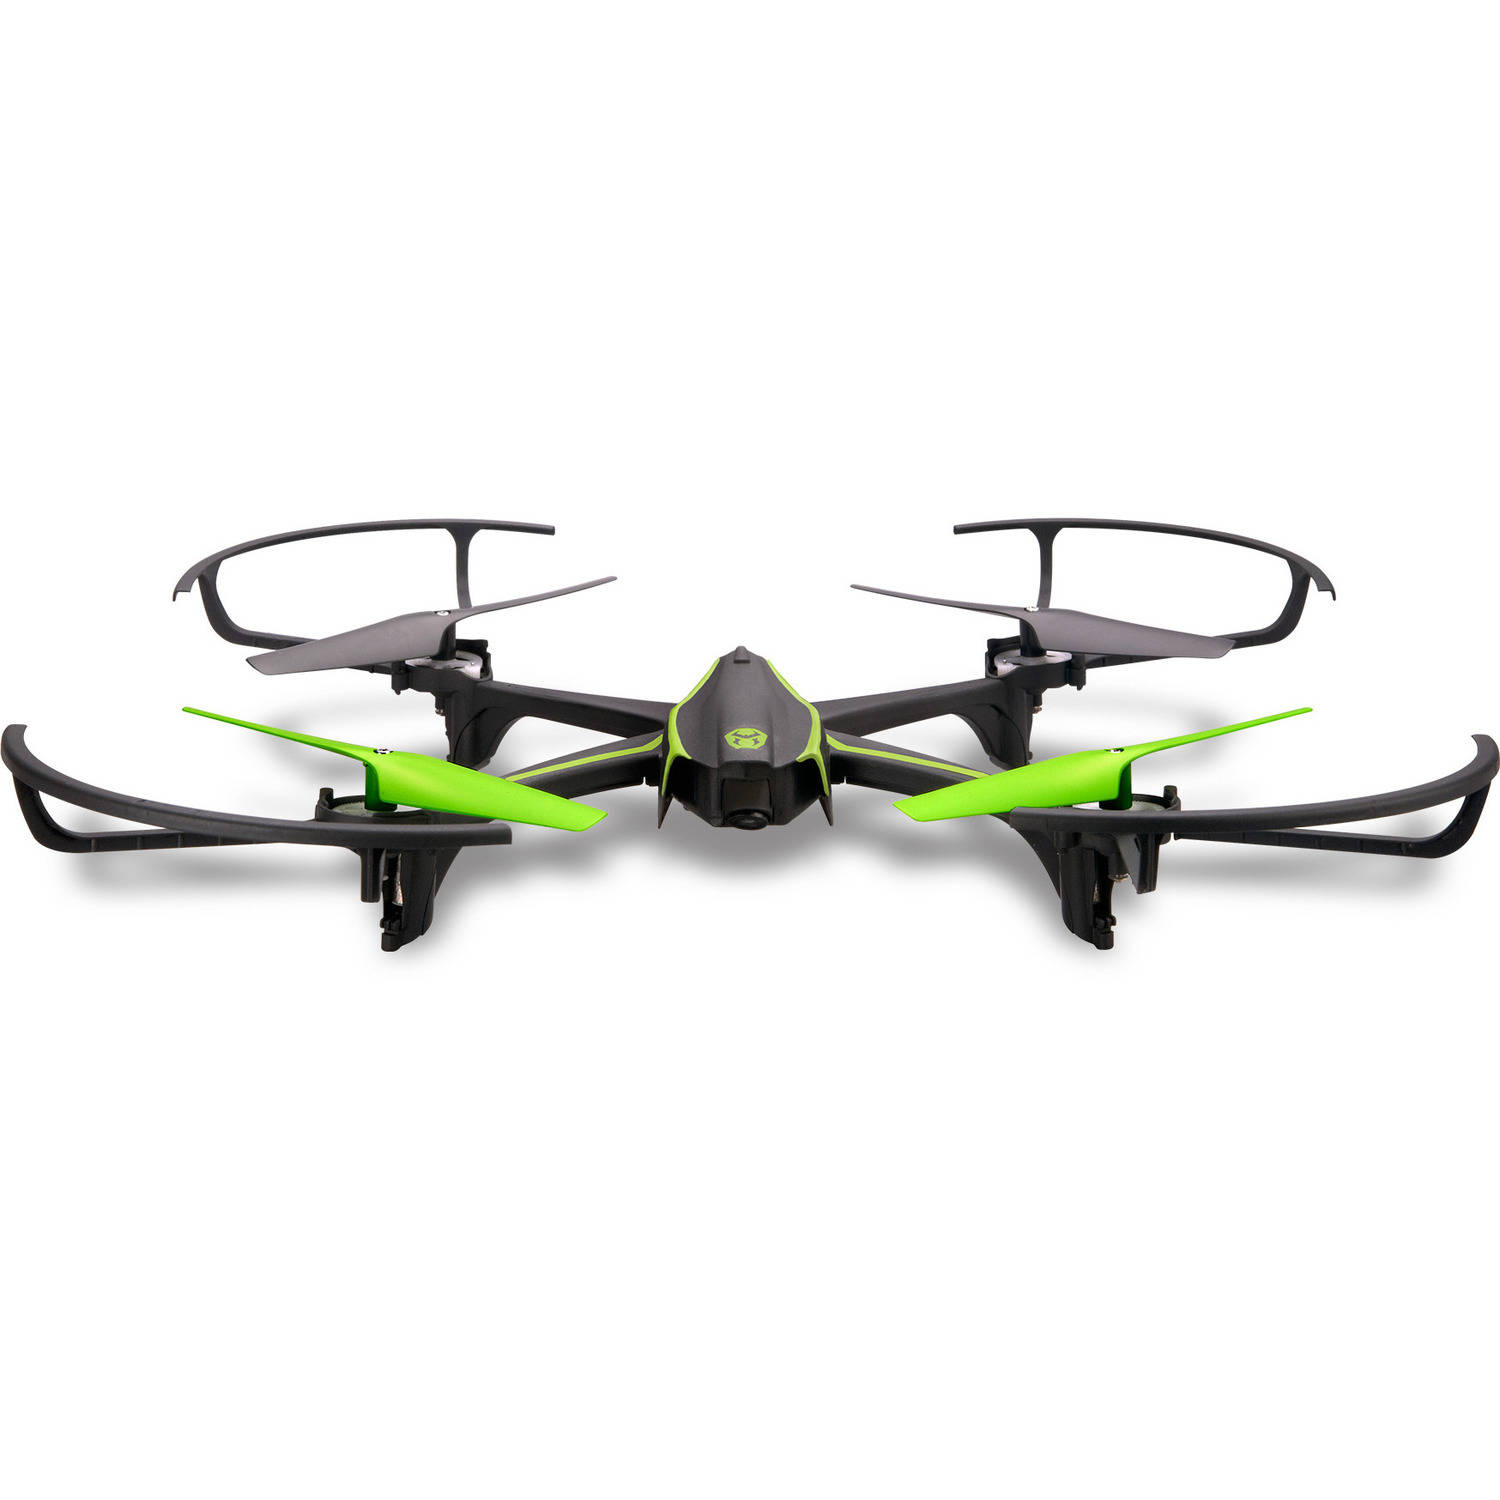 Sky Viper 2016 v2400 HD Streaming Video Drone by Sky Viper